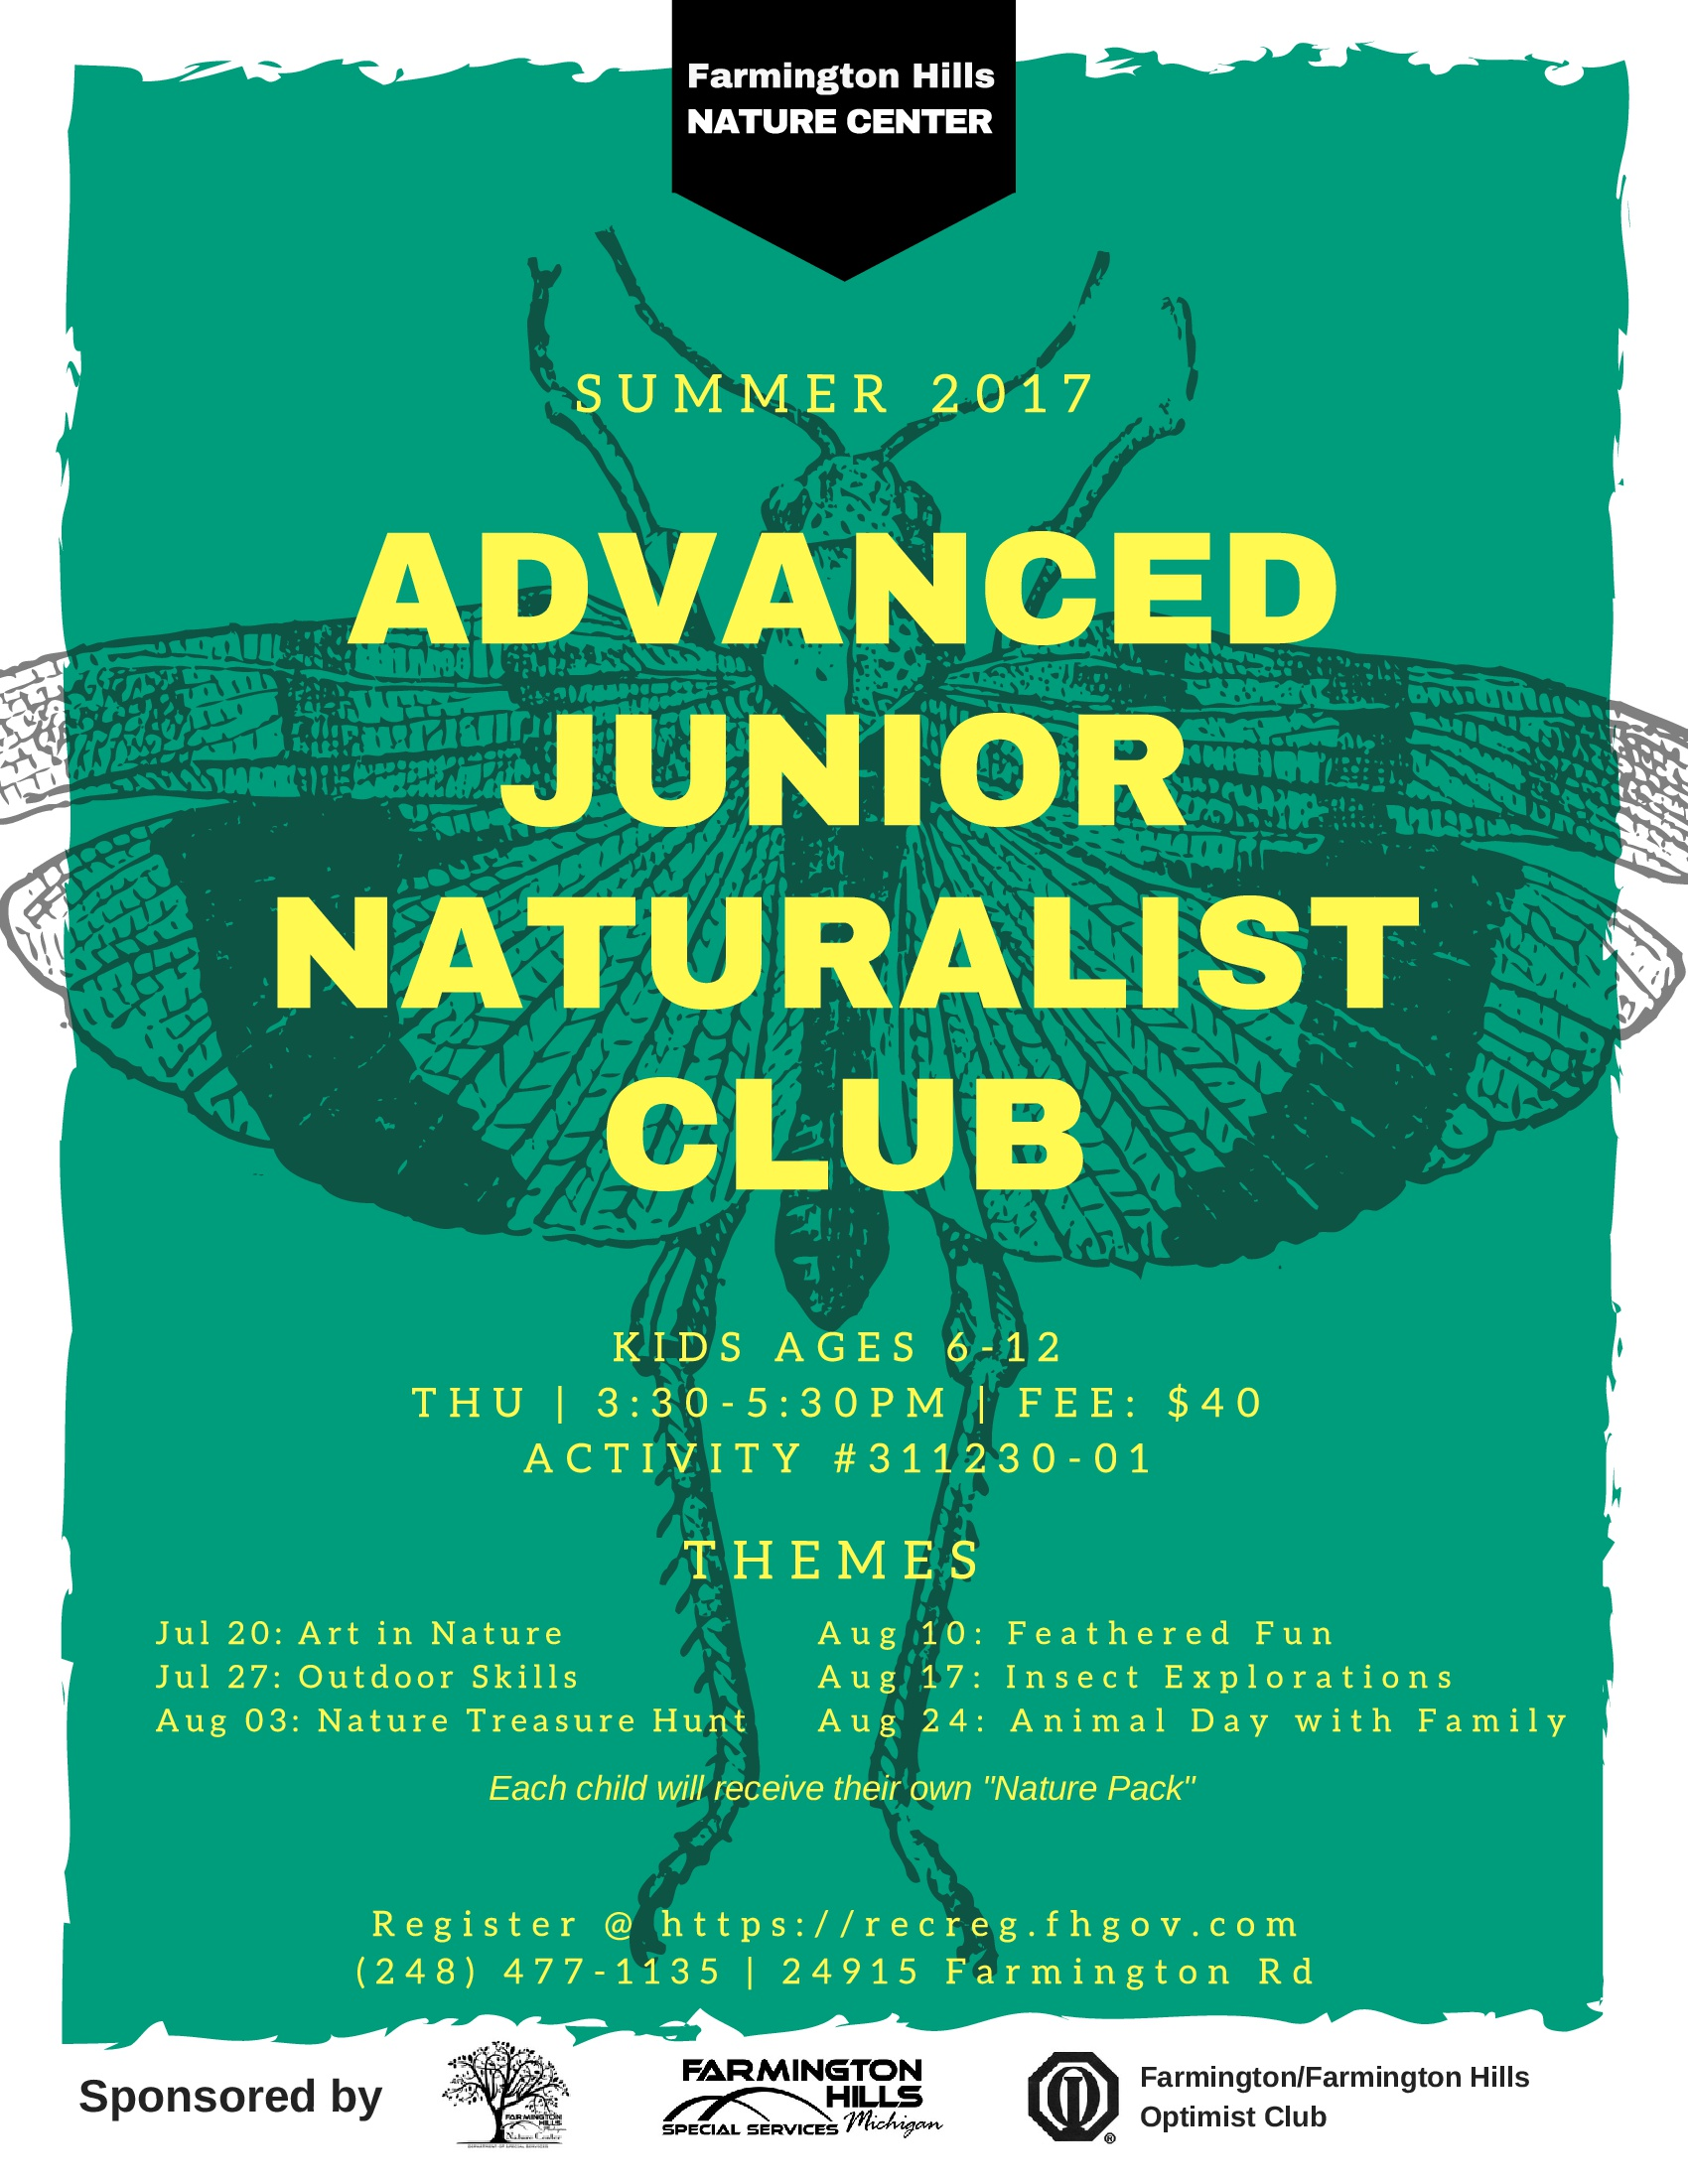 Advanced Junior Naturalist Club 2017